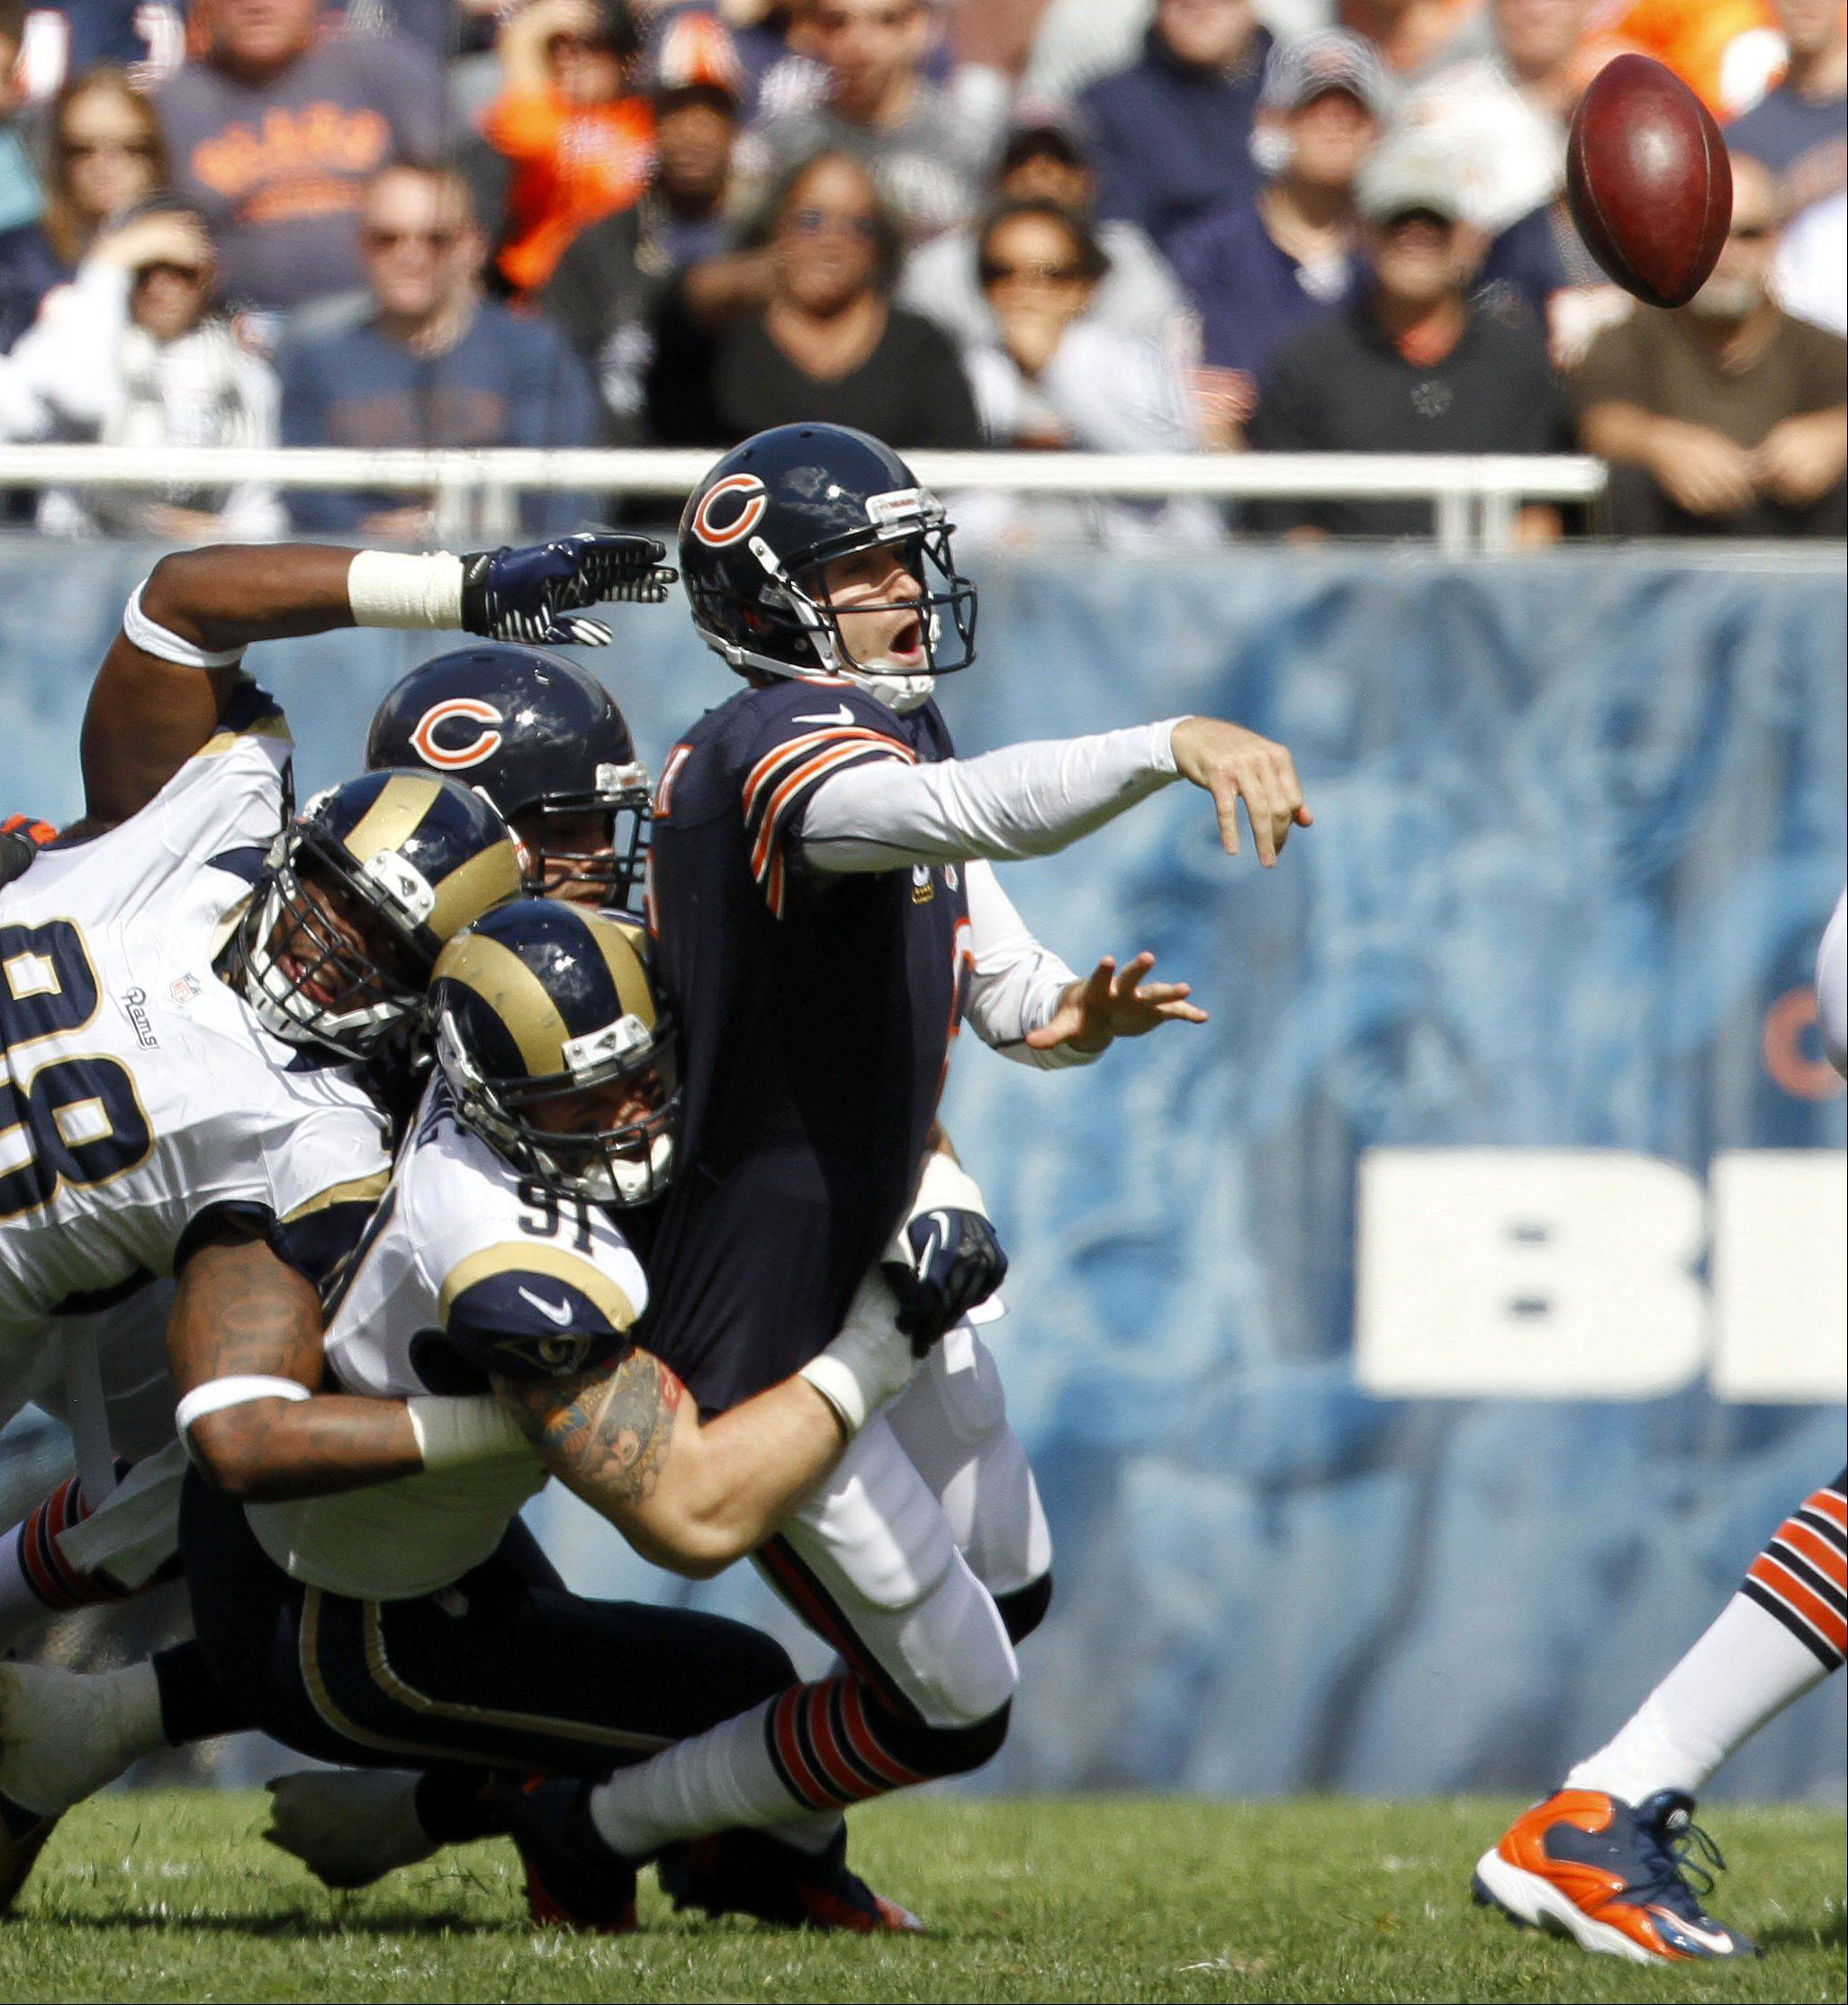 Chicago Bears quarterback Jay Cutler throws as he gets hit in the first half against the St. Louis Rams Sunday at Soldier Field in Chicago.